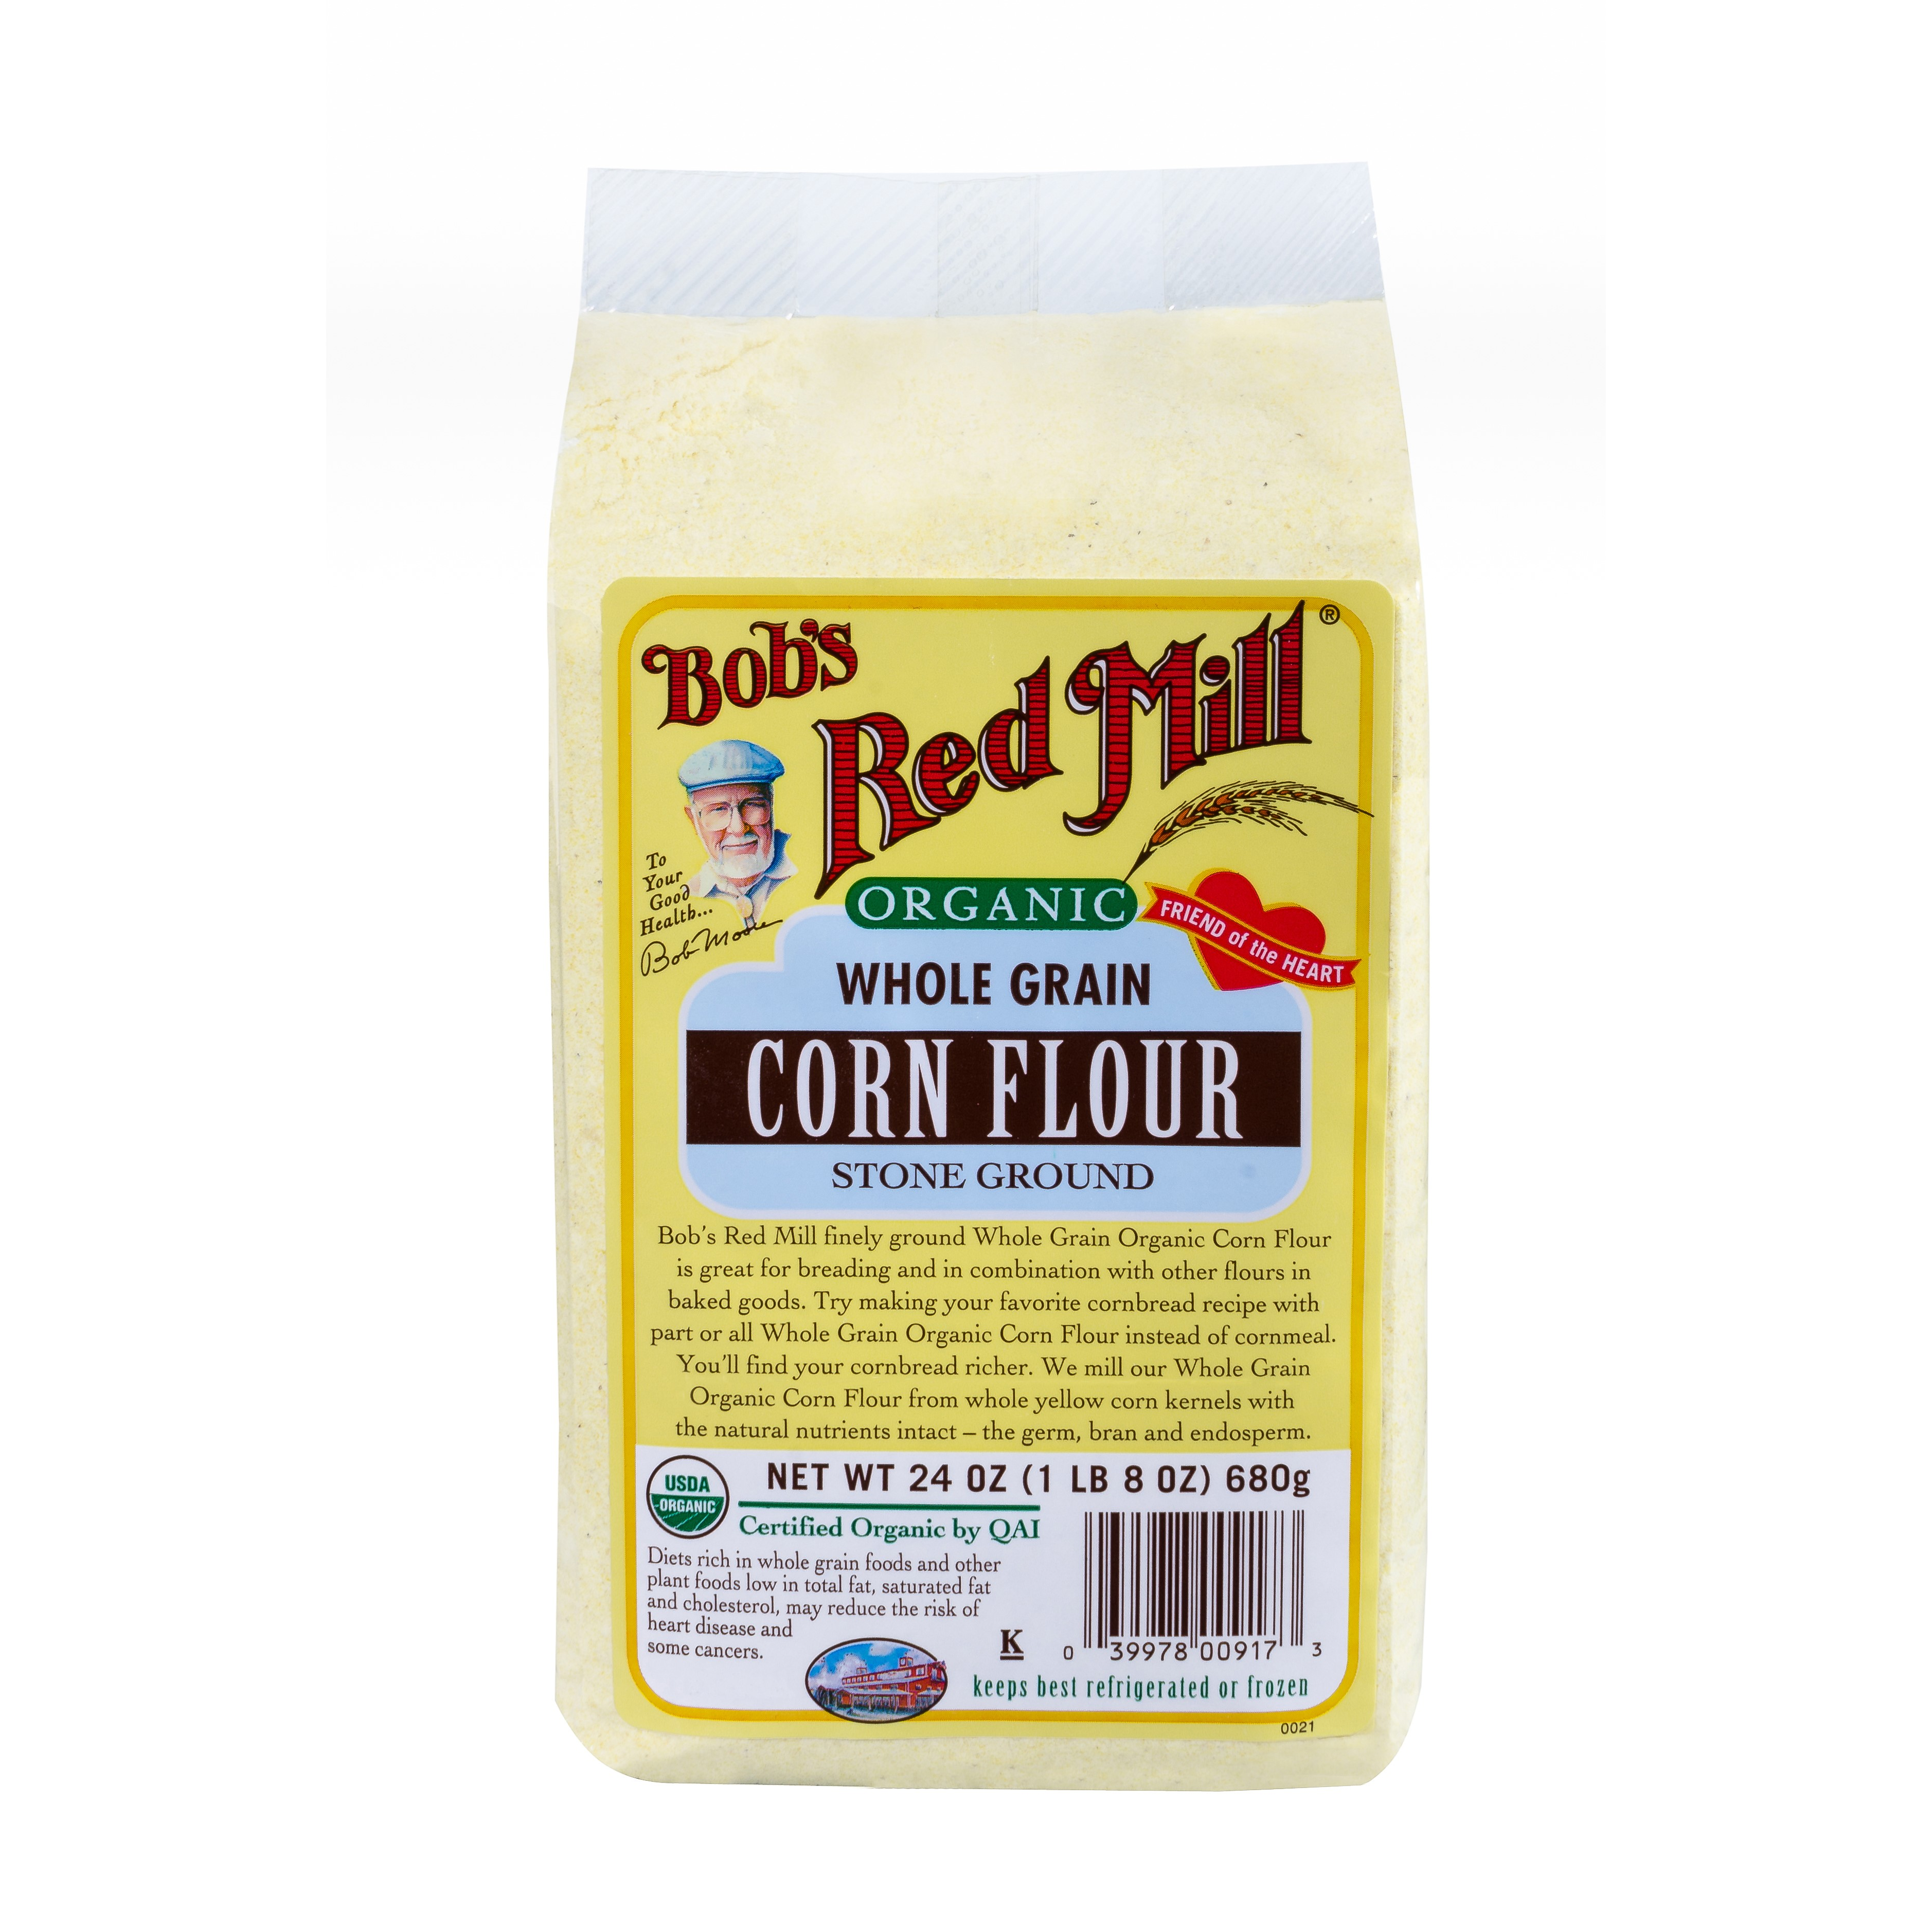 (2 Pack) Bobs Red Mill, Organic Corn Flour, 24 Oz